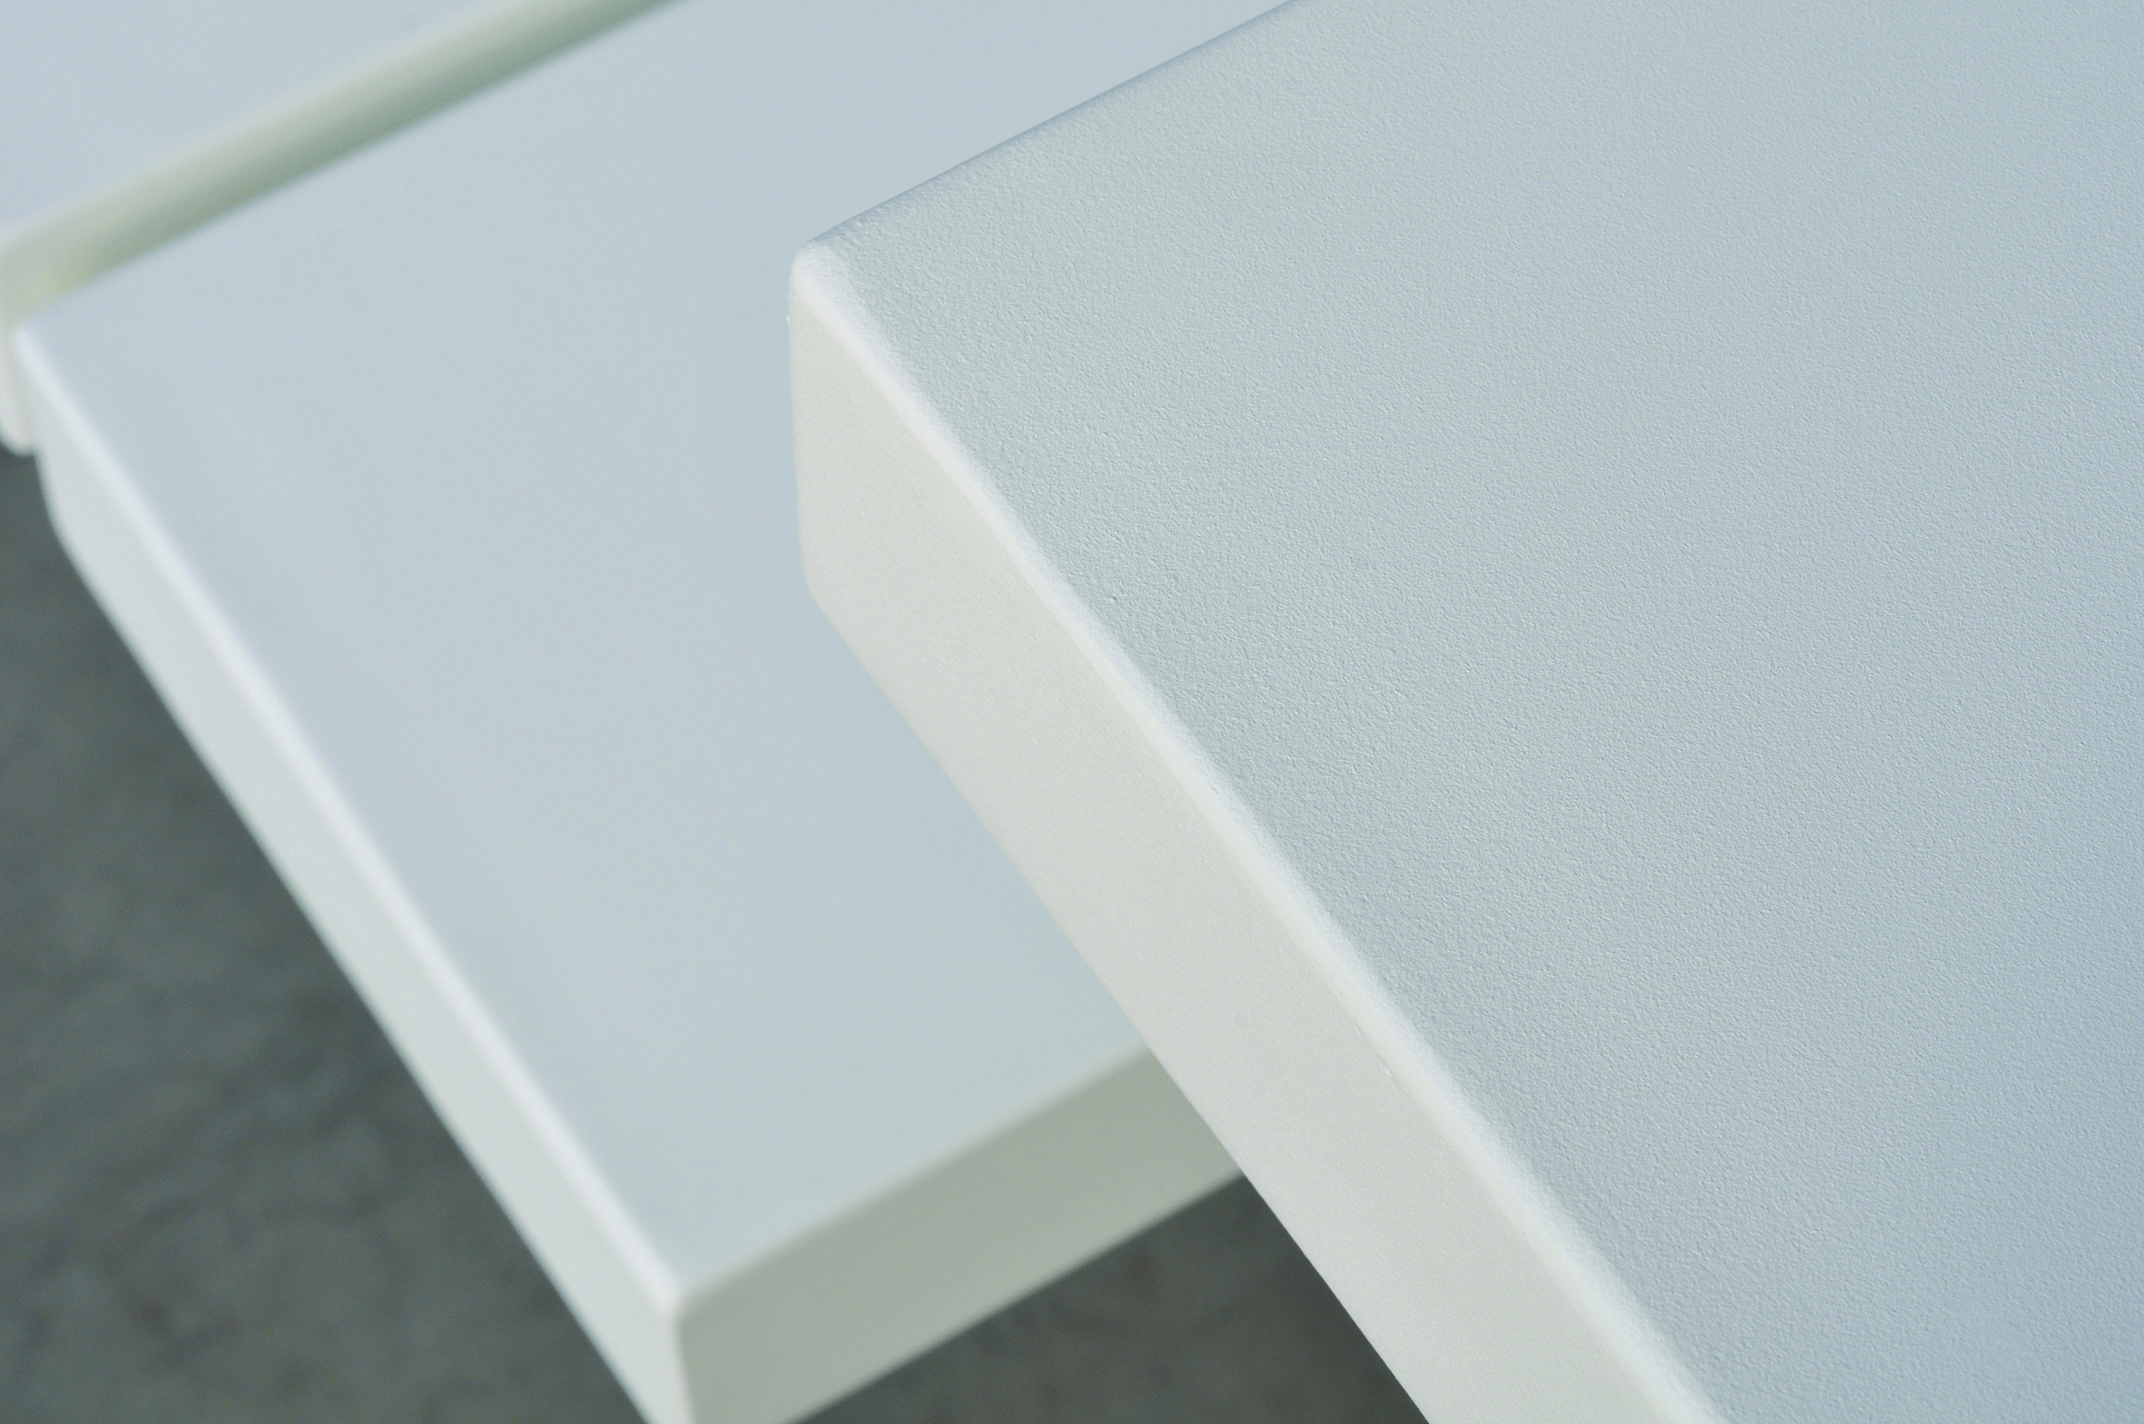 Colour Ral 9010 The 4 Standard Colours Are Ral 9010 Pure White Ral 9006 White